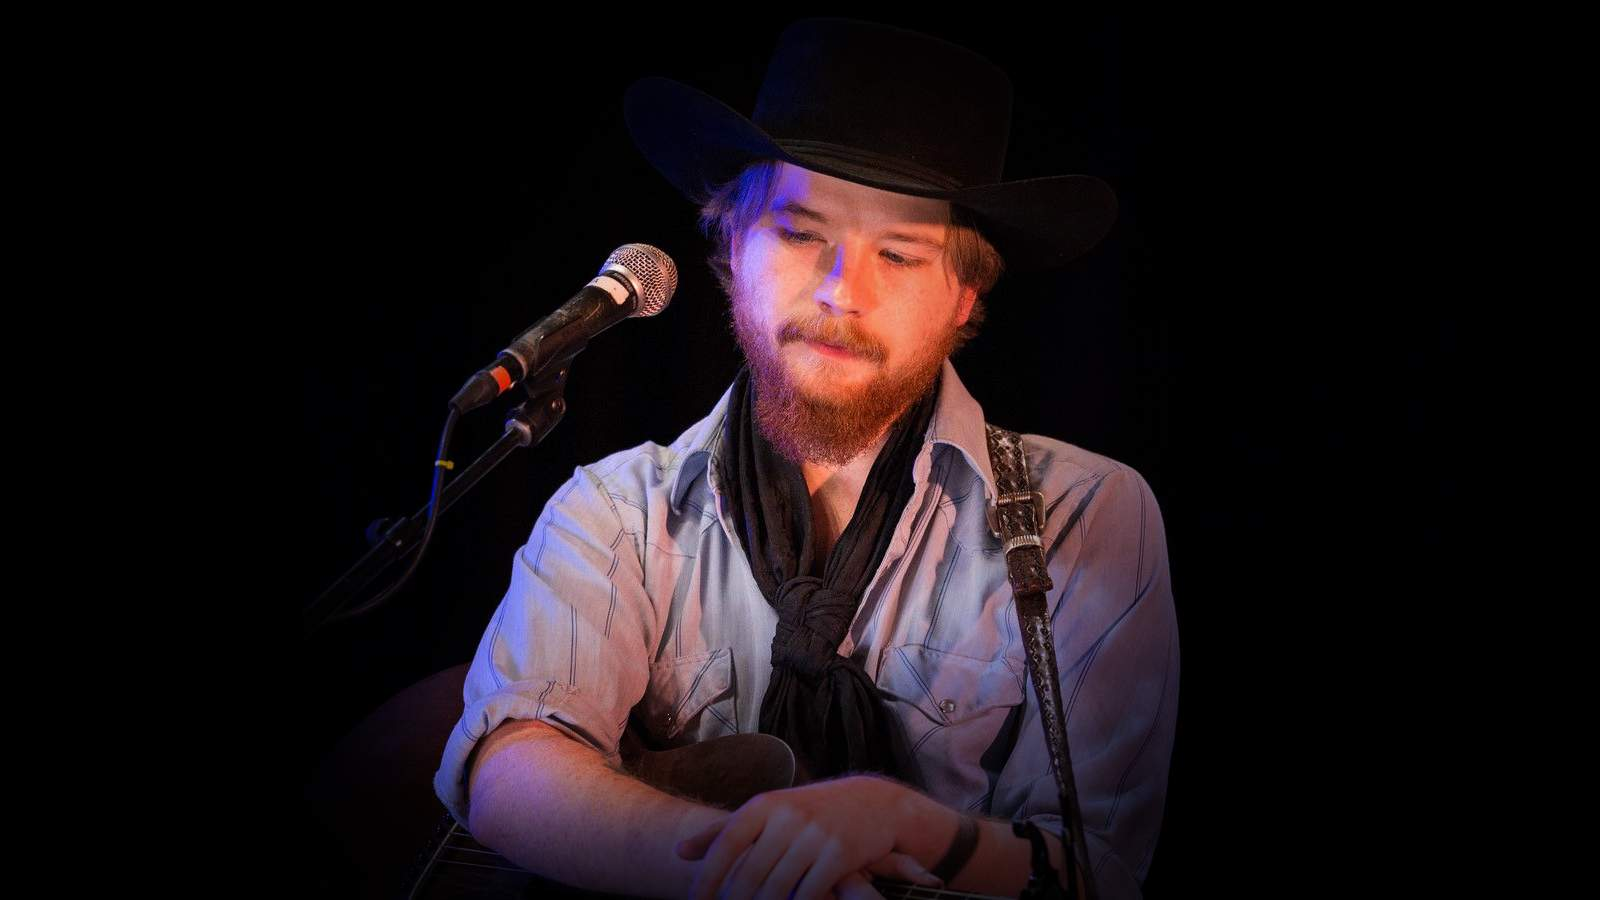 Colter Wall (Rescheduled from 3/27)